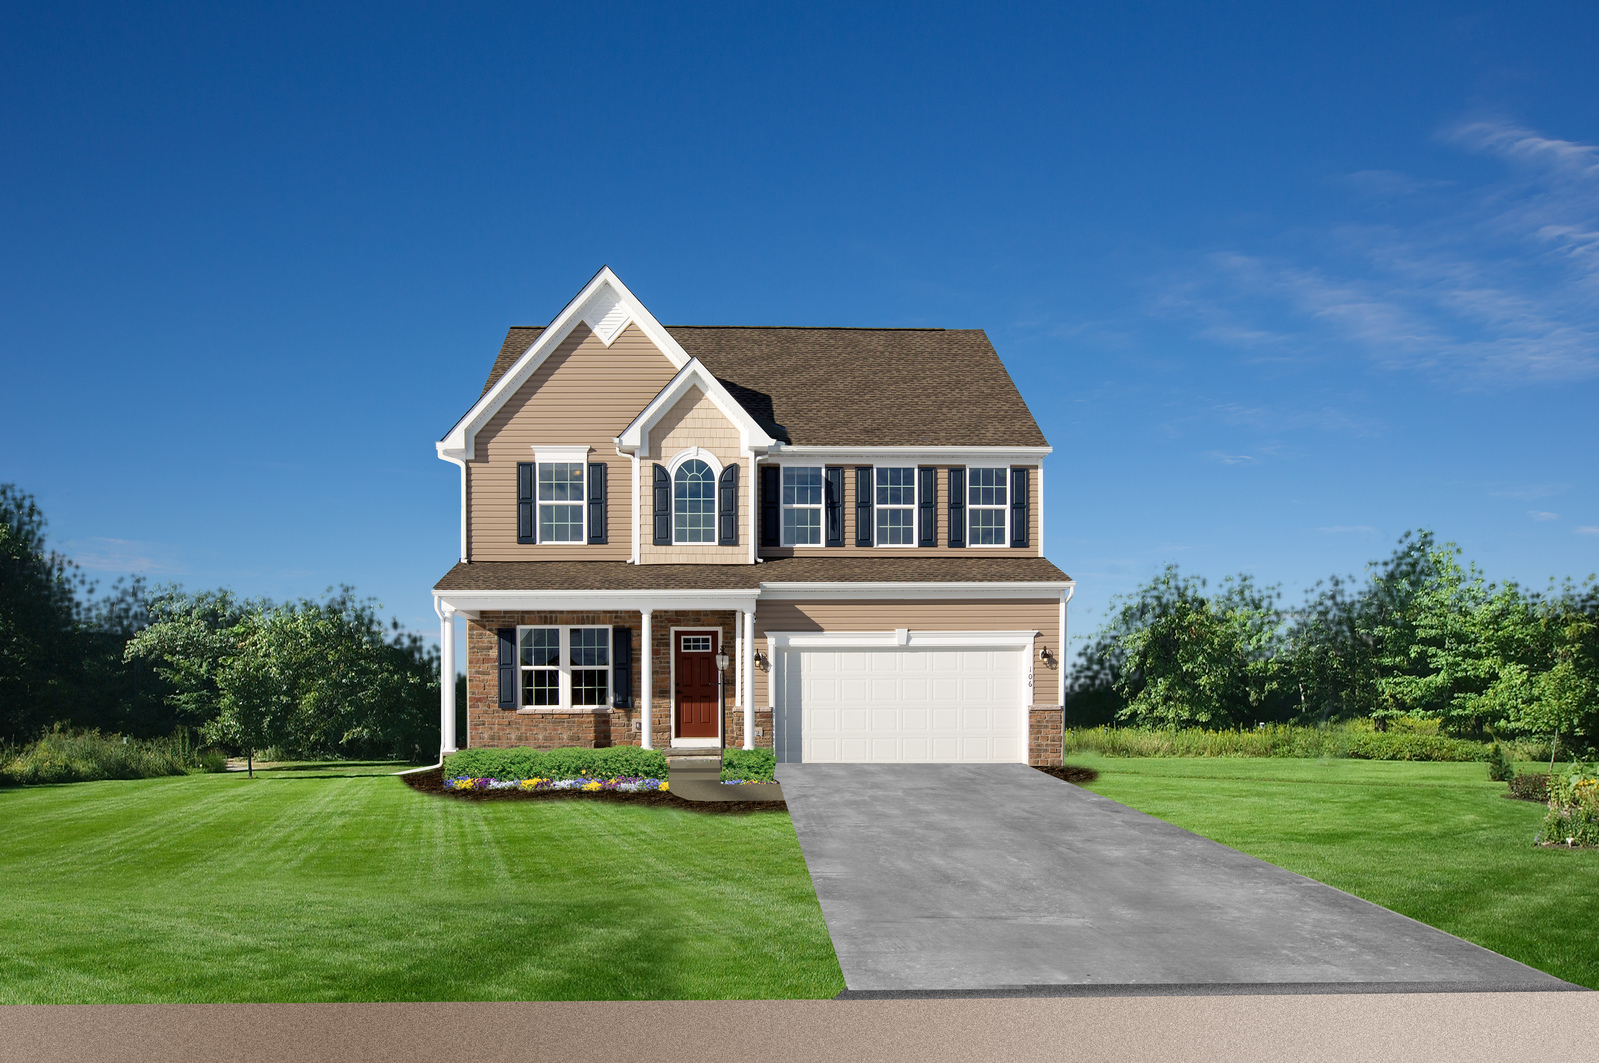 New homes for sale at oakleys chase in richmond va within the in an ever changing world you can give your family a space of security solutioingenieria Images